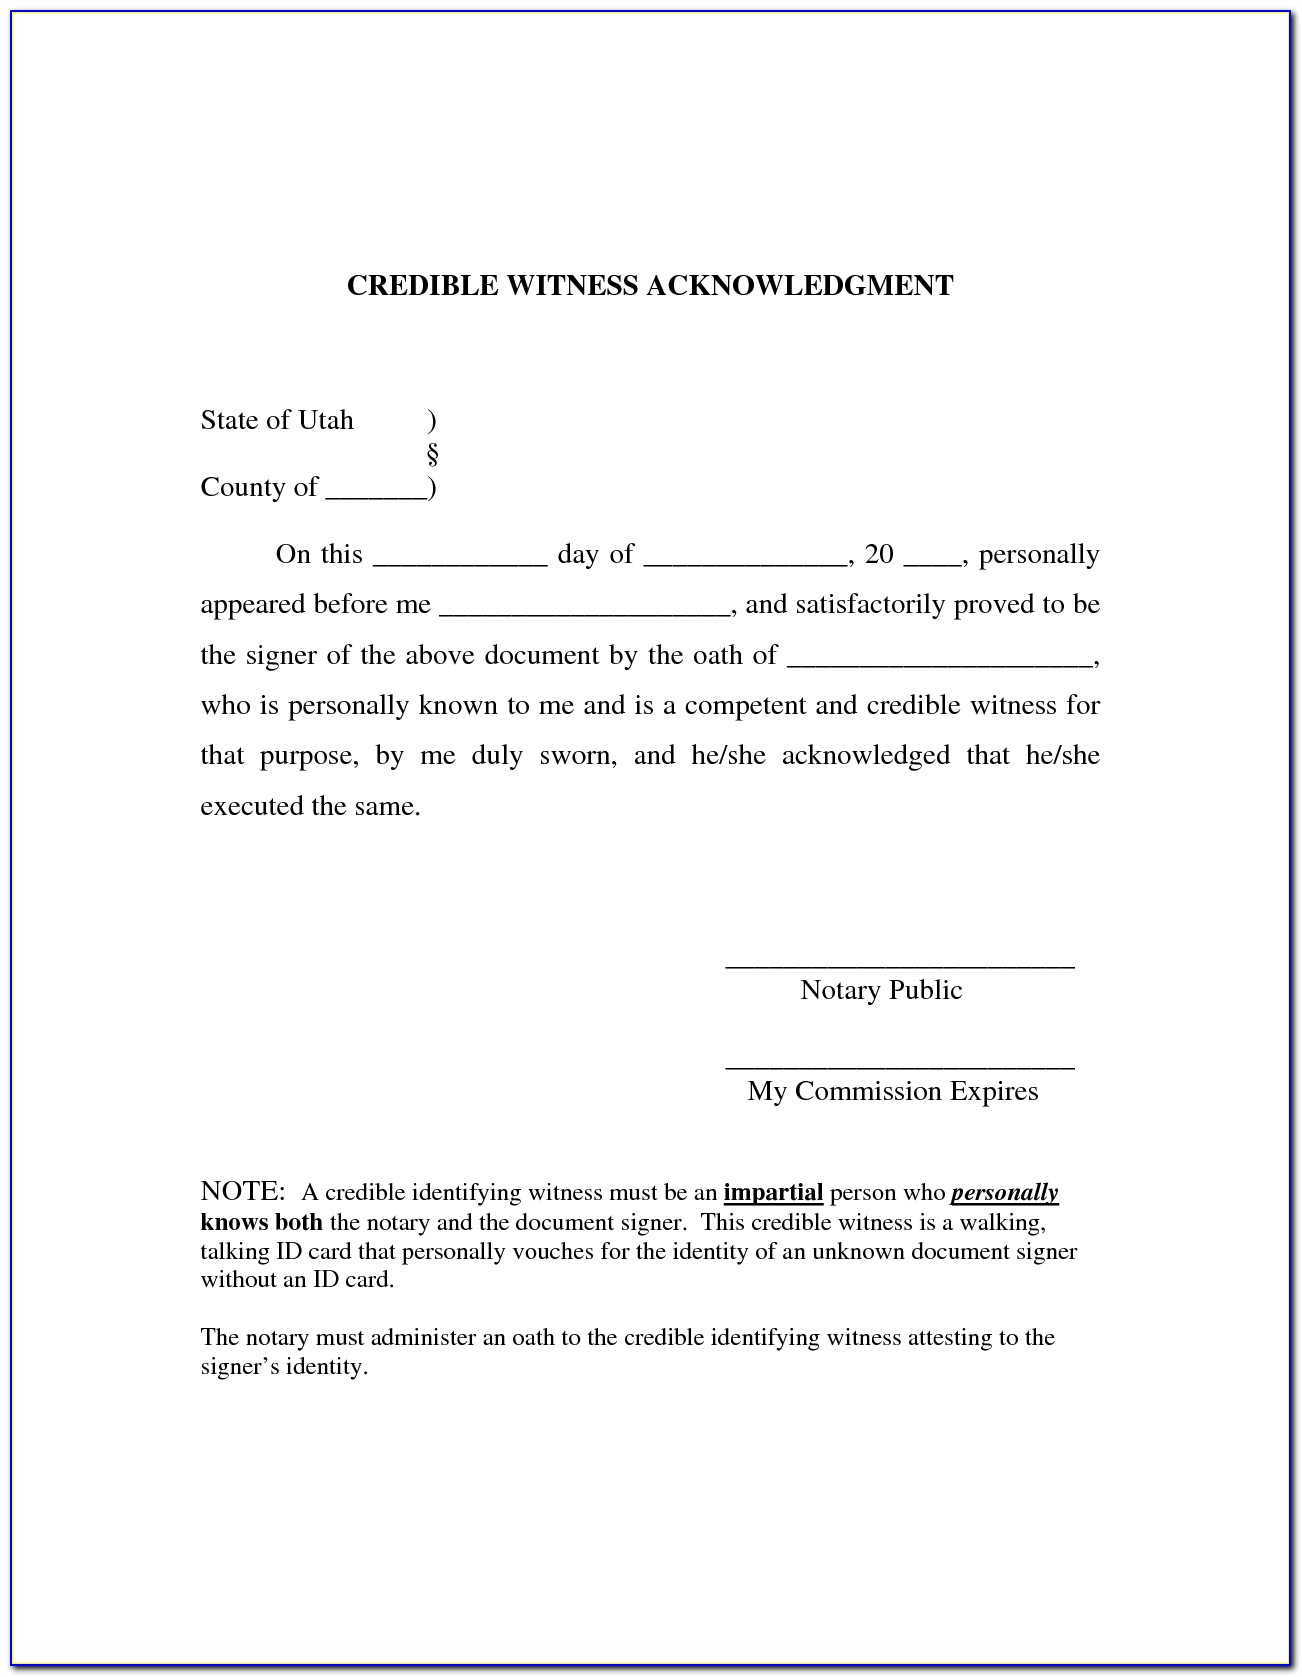 Texas Notary Certificate Of Acknowledgement